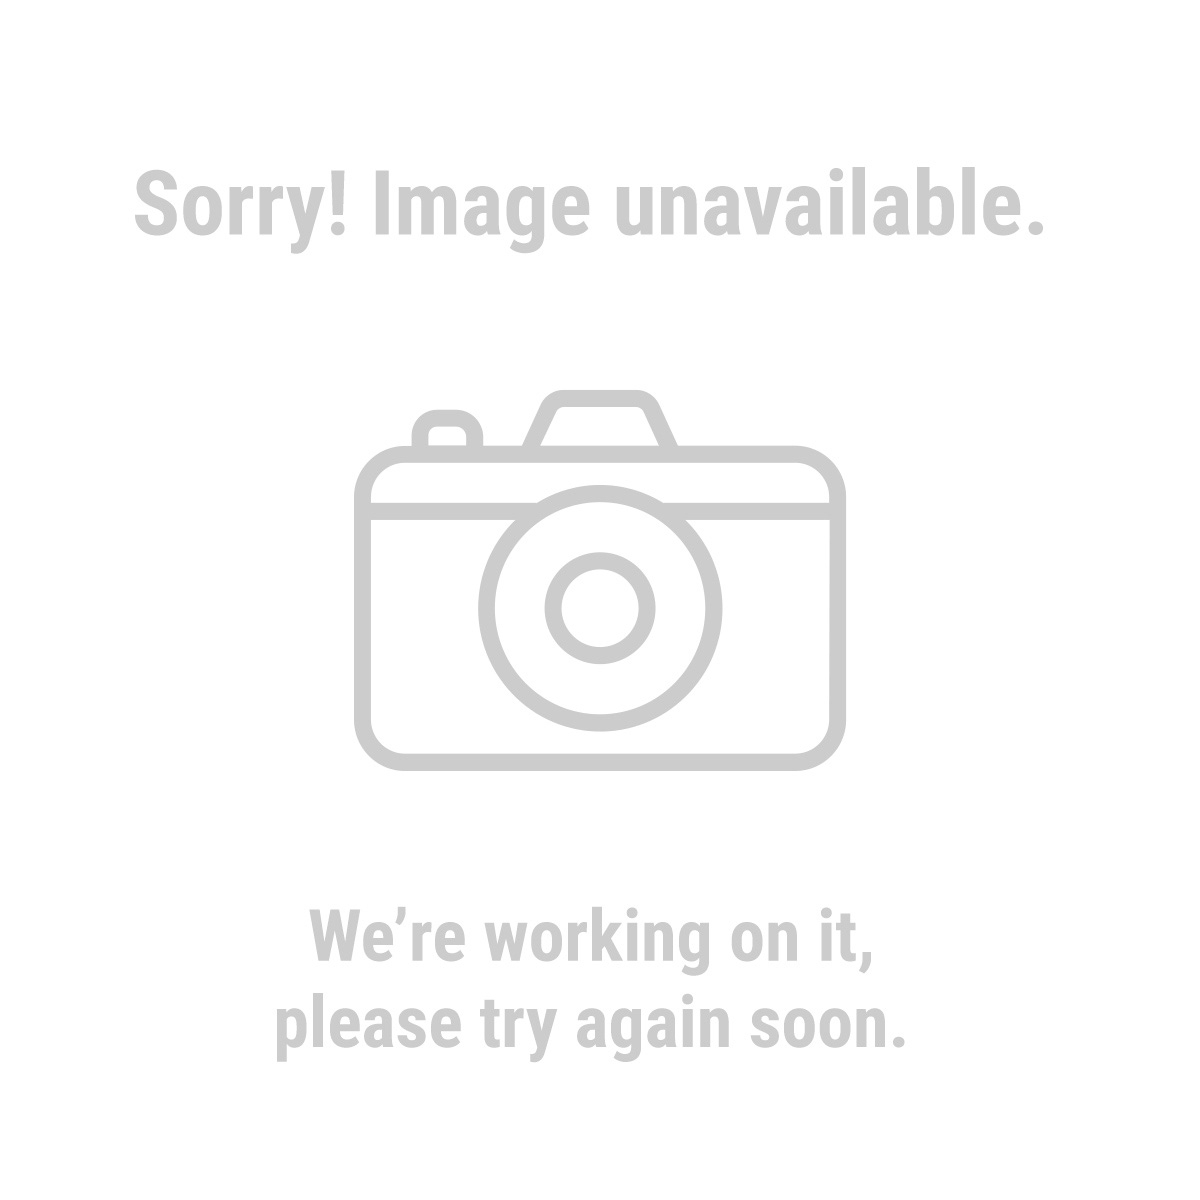 Chicago Electric Welding 39664 Welding Gloves